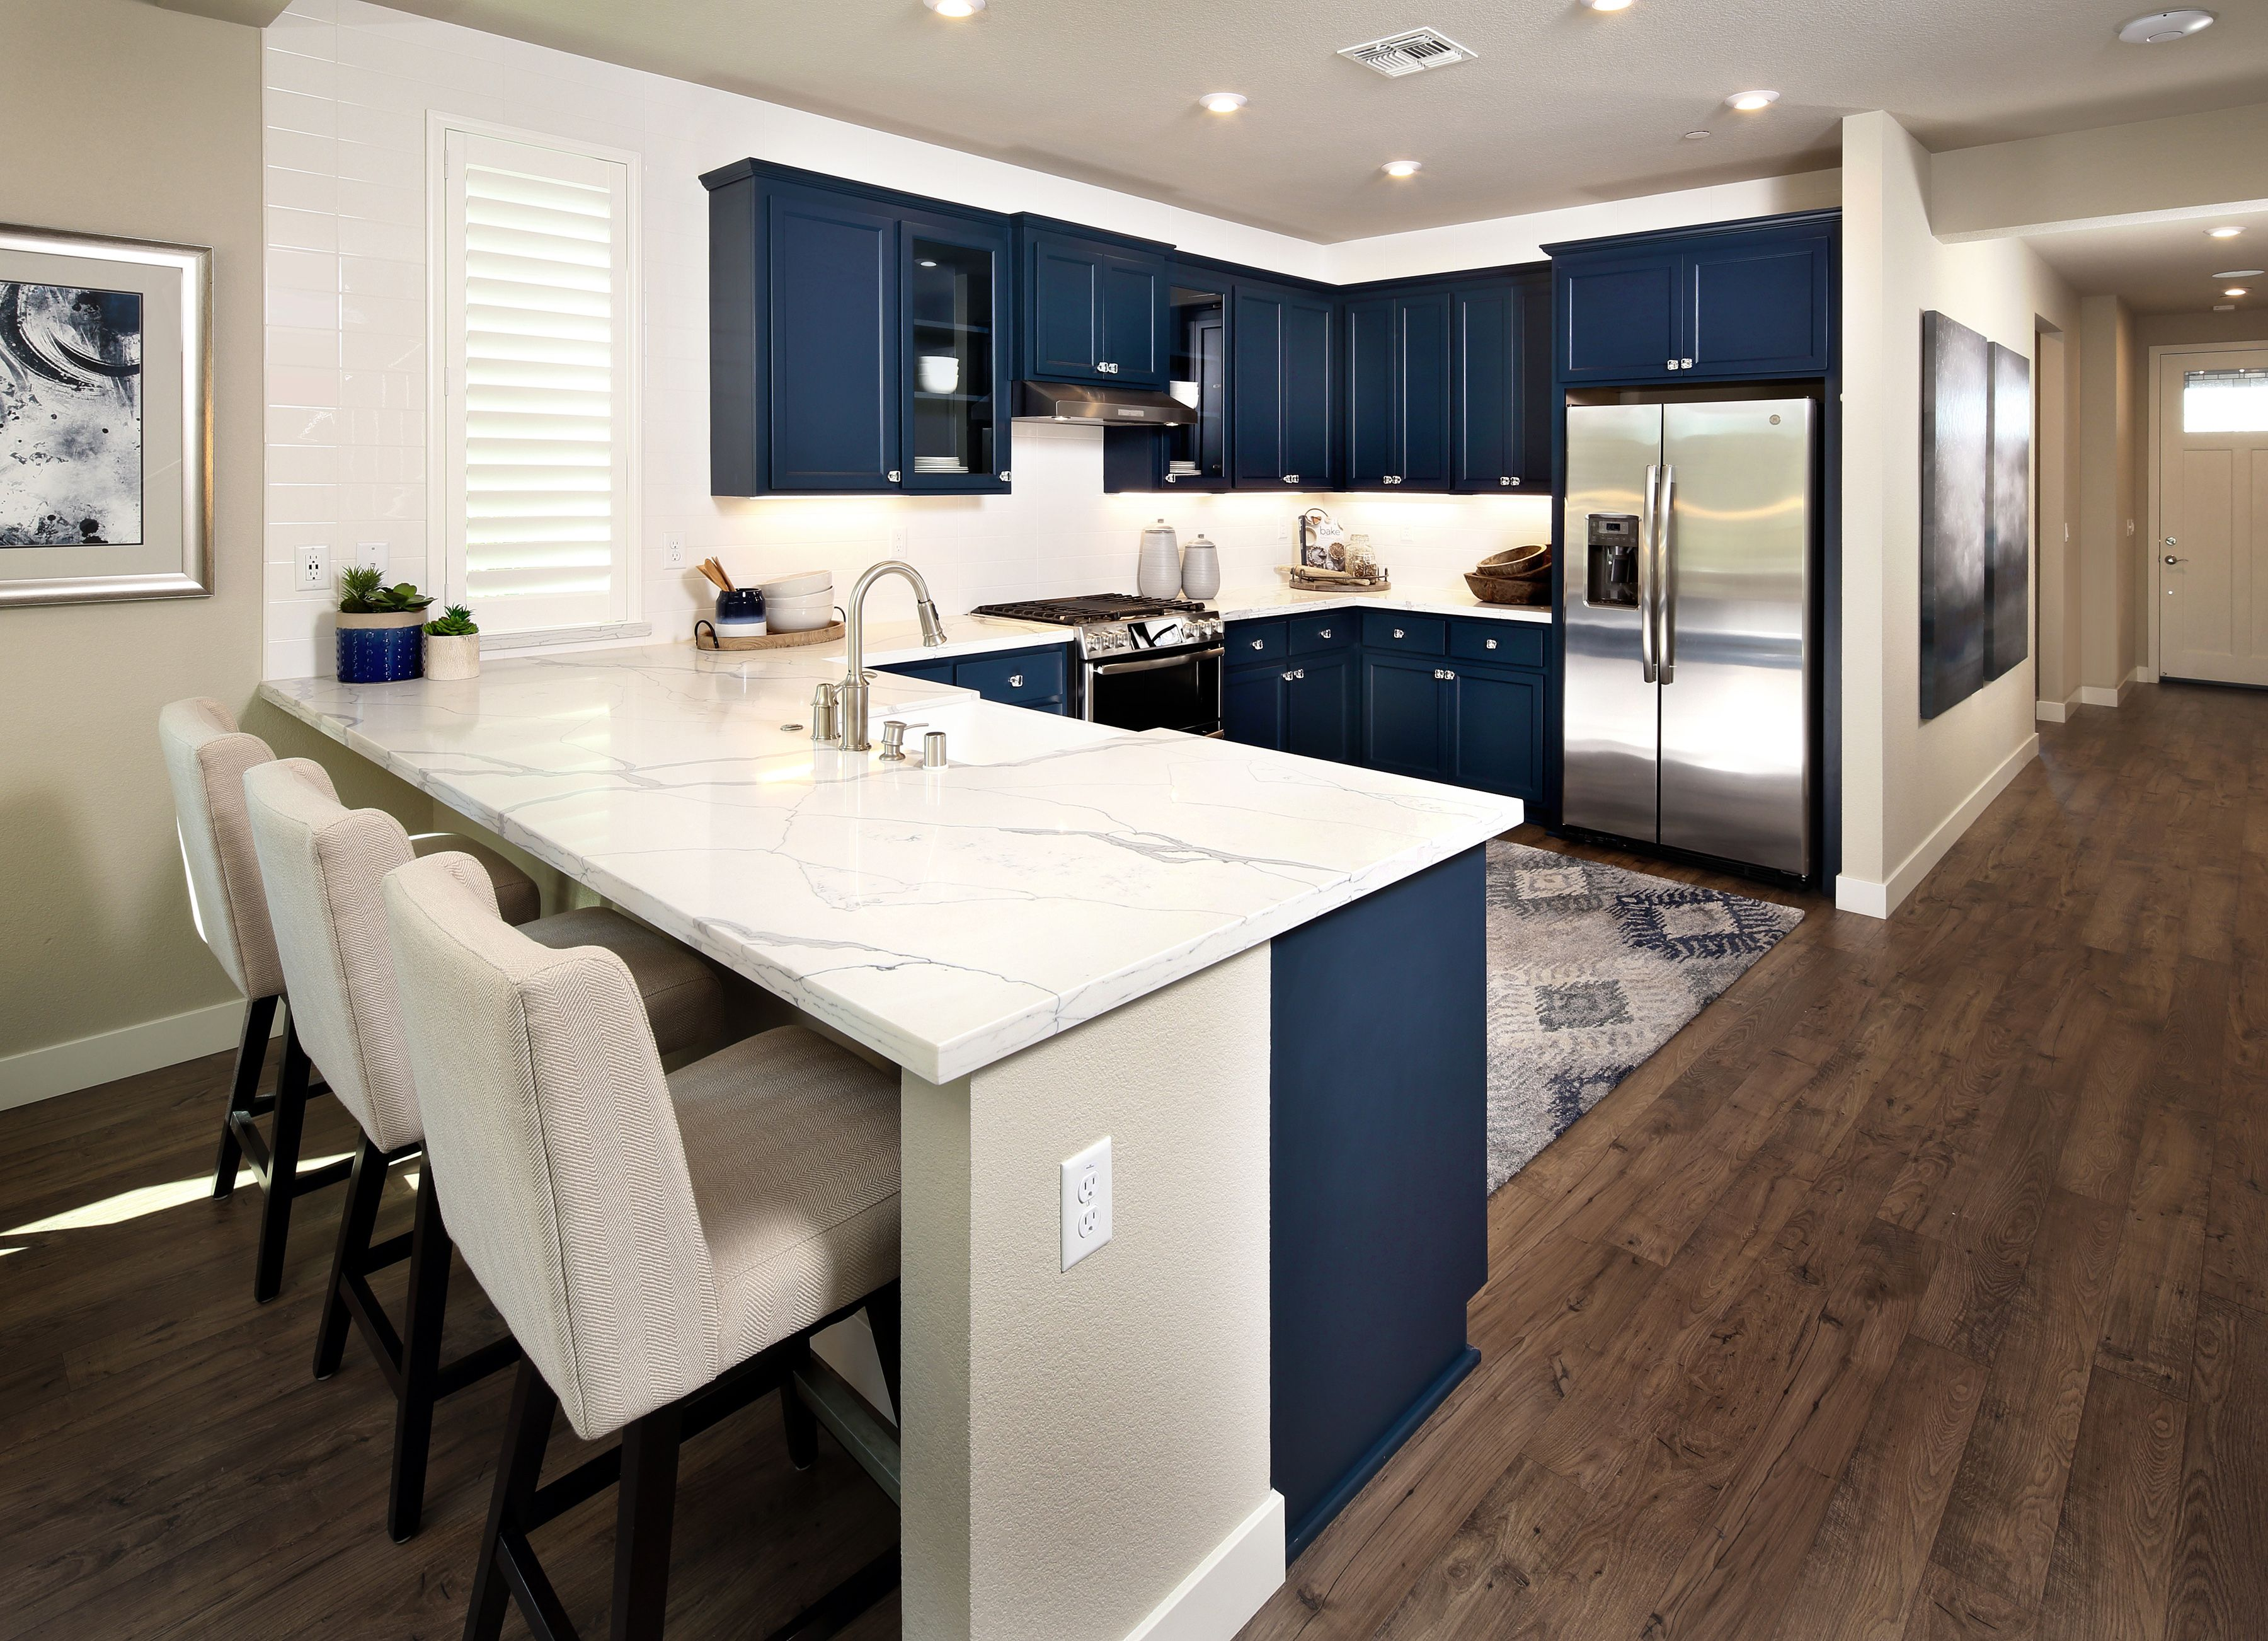 imagine cooking fall favorites here… kitchen newhomes